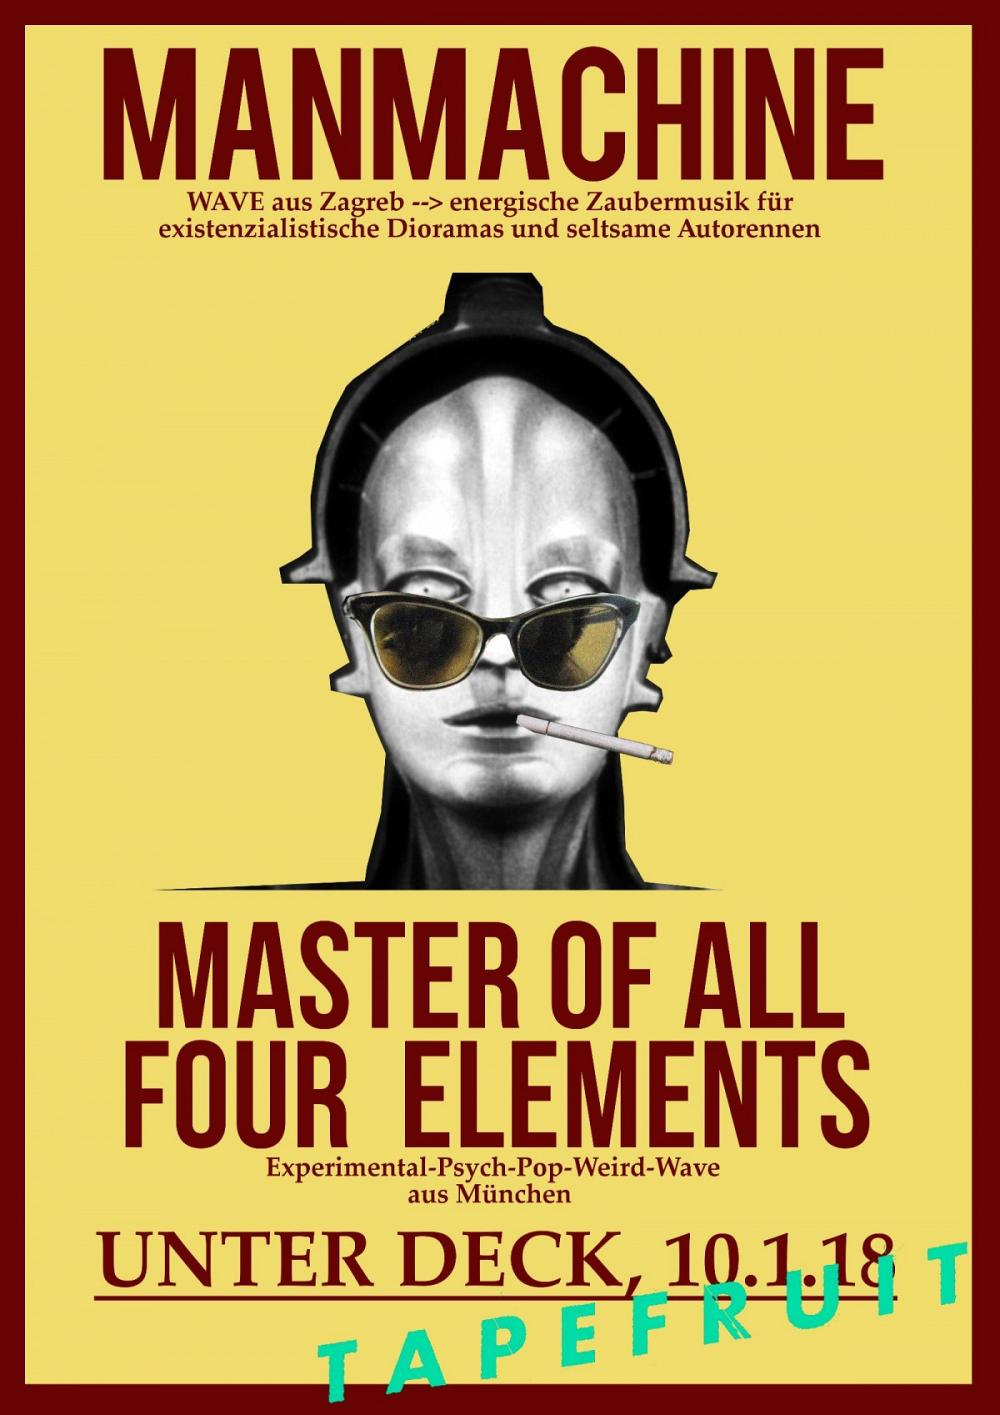 Tapefruit Konzert: Man Machine + Master Of All Four Elements | 10.01.2018 @ Unter Deck